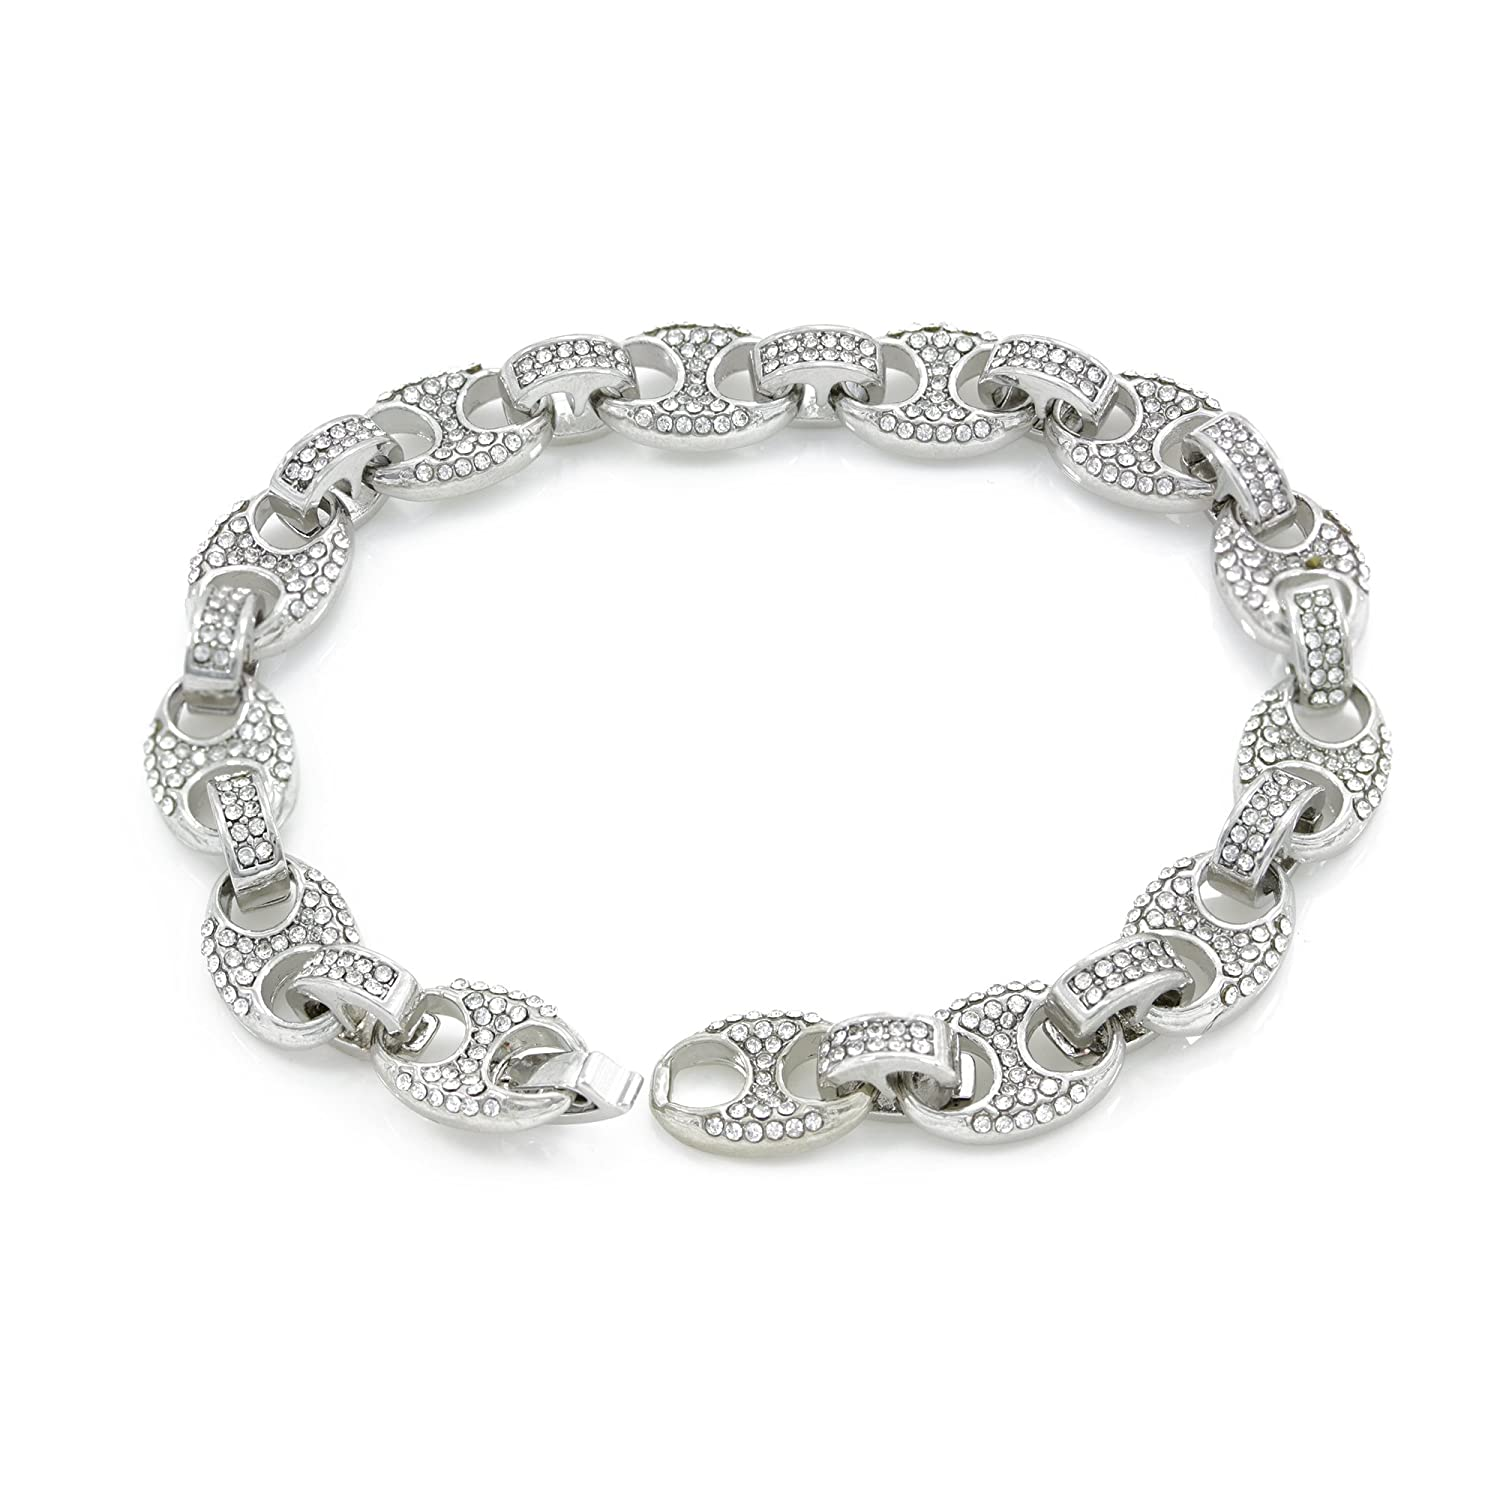 4279fb96741 Bling Bling NY Mens Iced Out Mariner Link Choker Necklace Bracelet Silver  Finish Lab Created Diamonds 10MM (8.5-30 inches) (Bracelet 8.5  )